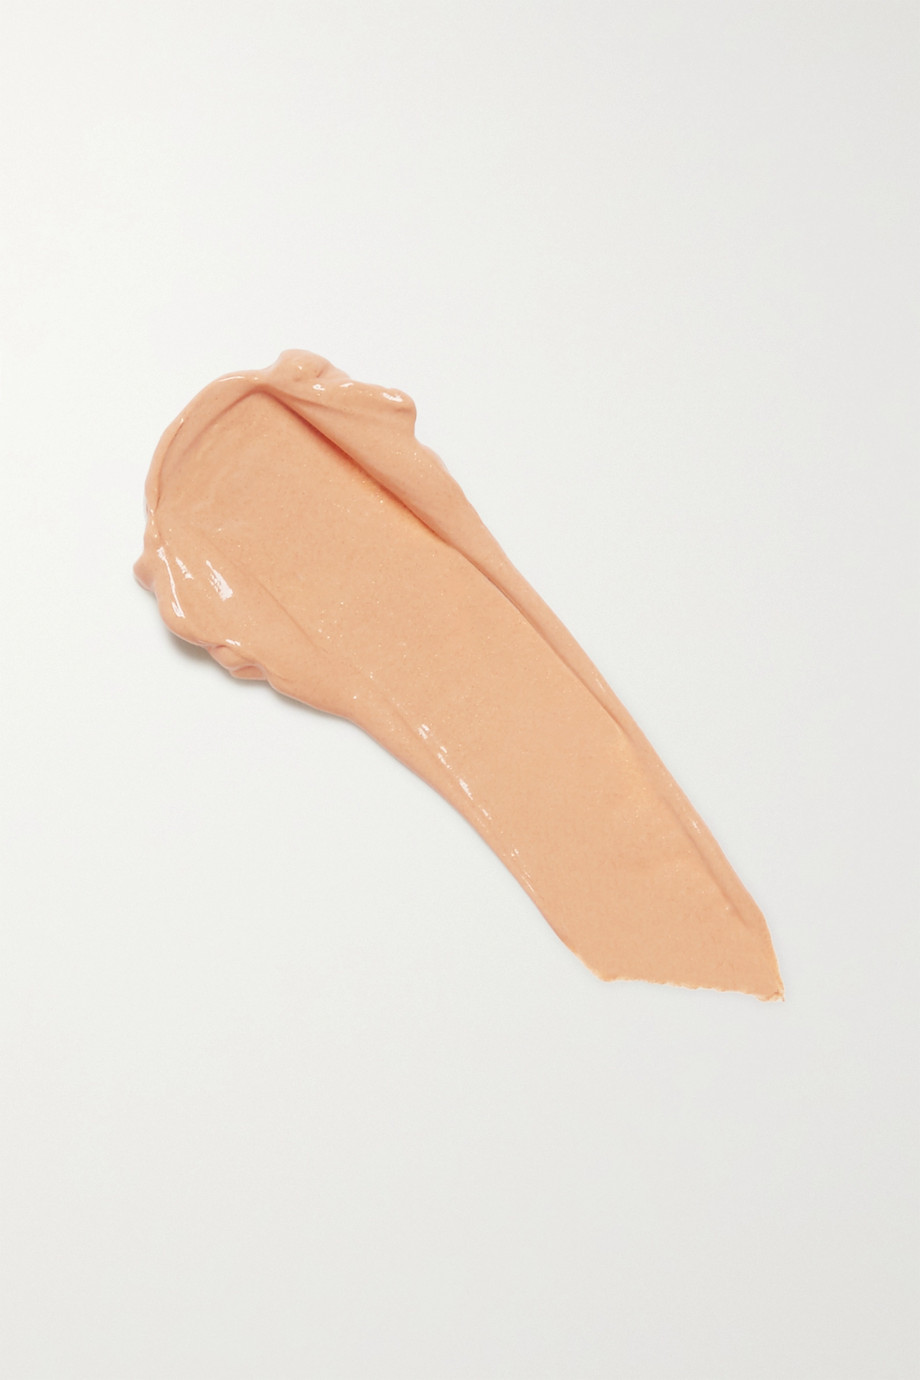 NARS Tinted Glow Booster - Kalvoya, 30ml